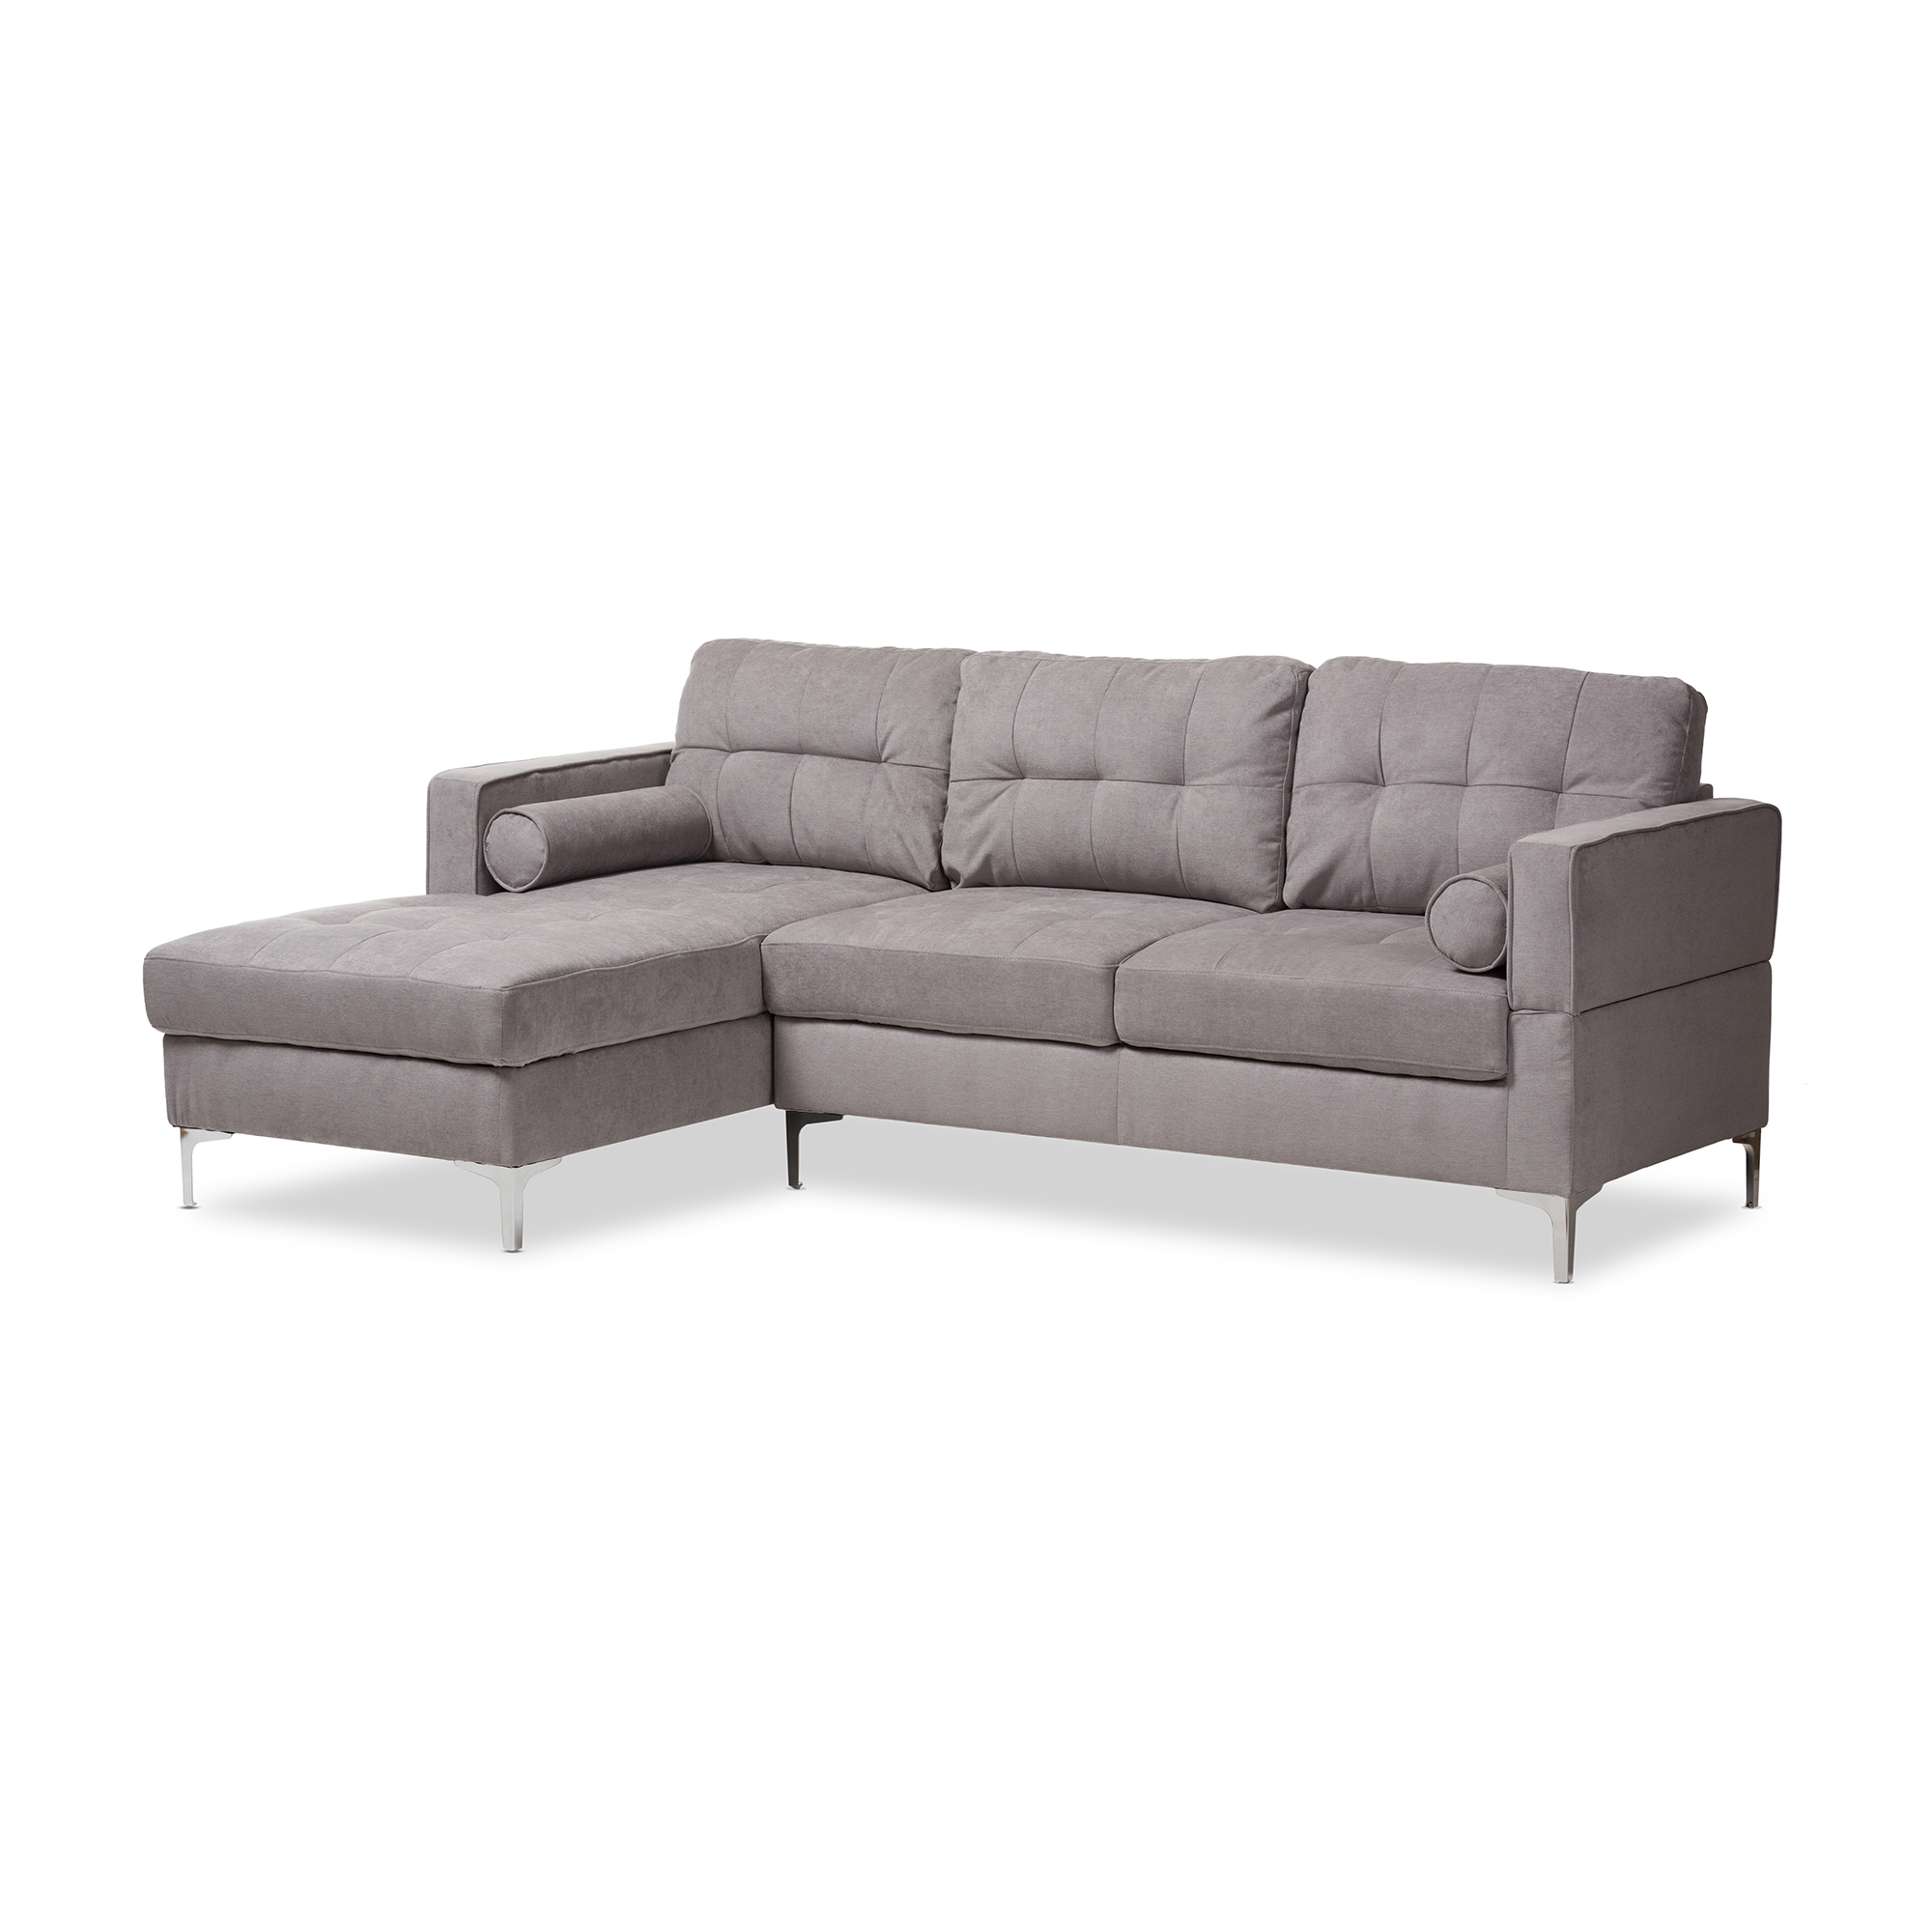 Baxton Studio Mireille Modern And Contemporary Light Grey Fabric  Upholstered Sectional Sofa Affordable Modern Furniture In